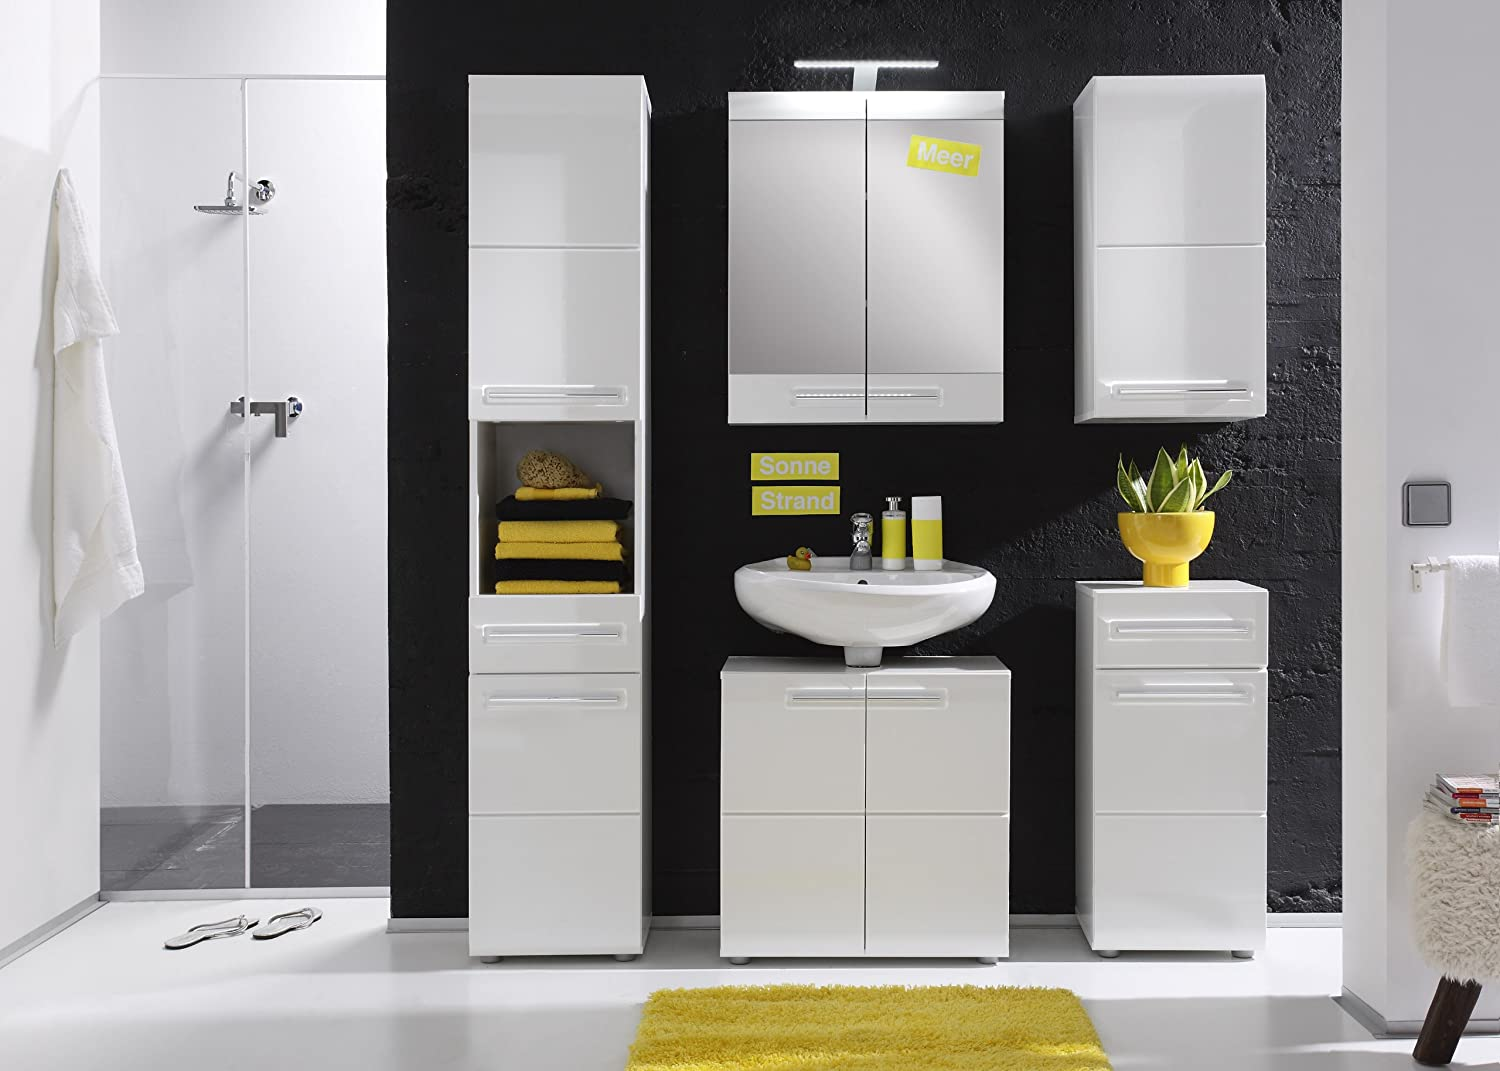 Furnline Bora High Gloss Bathroom Furniture Tall Cabinet, White 1327-101-01